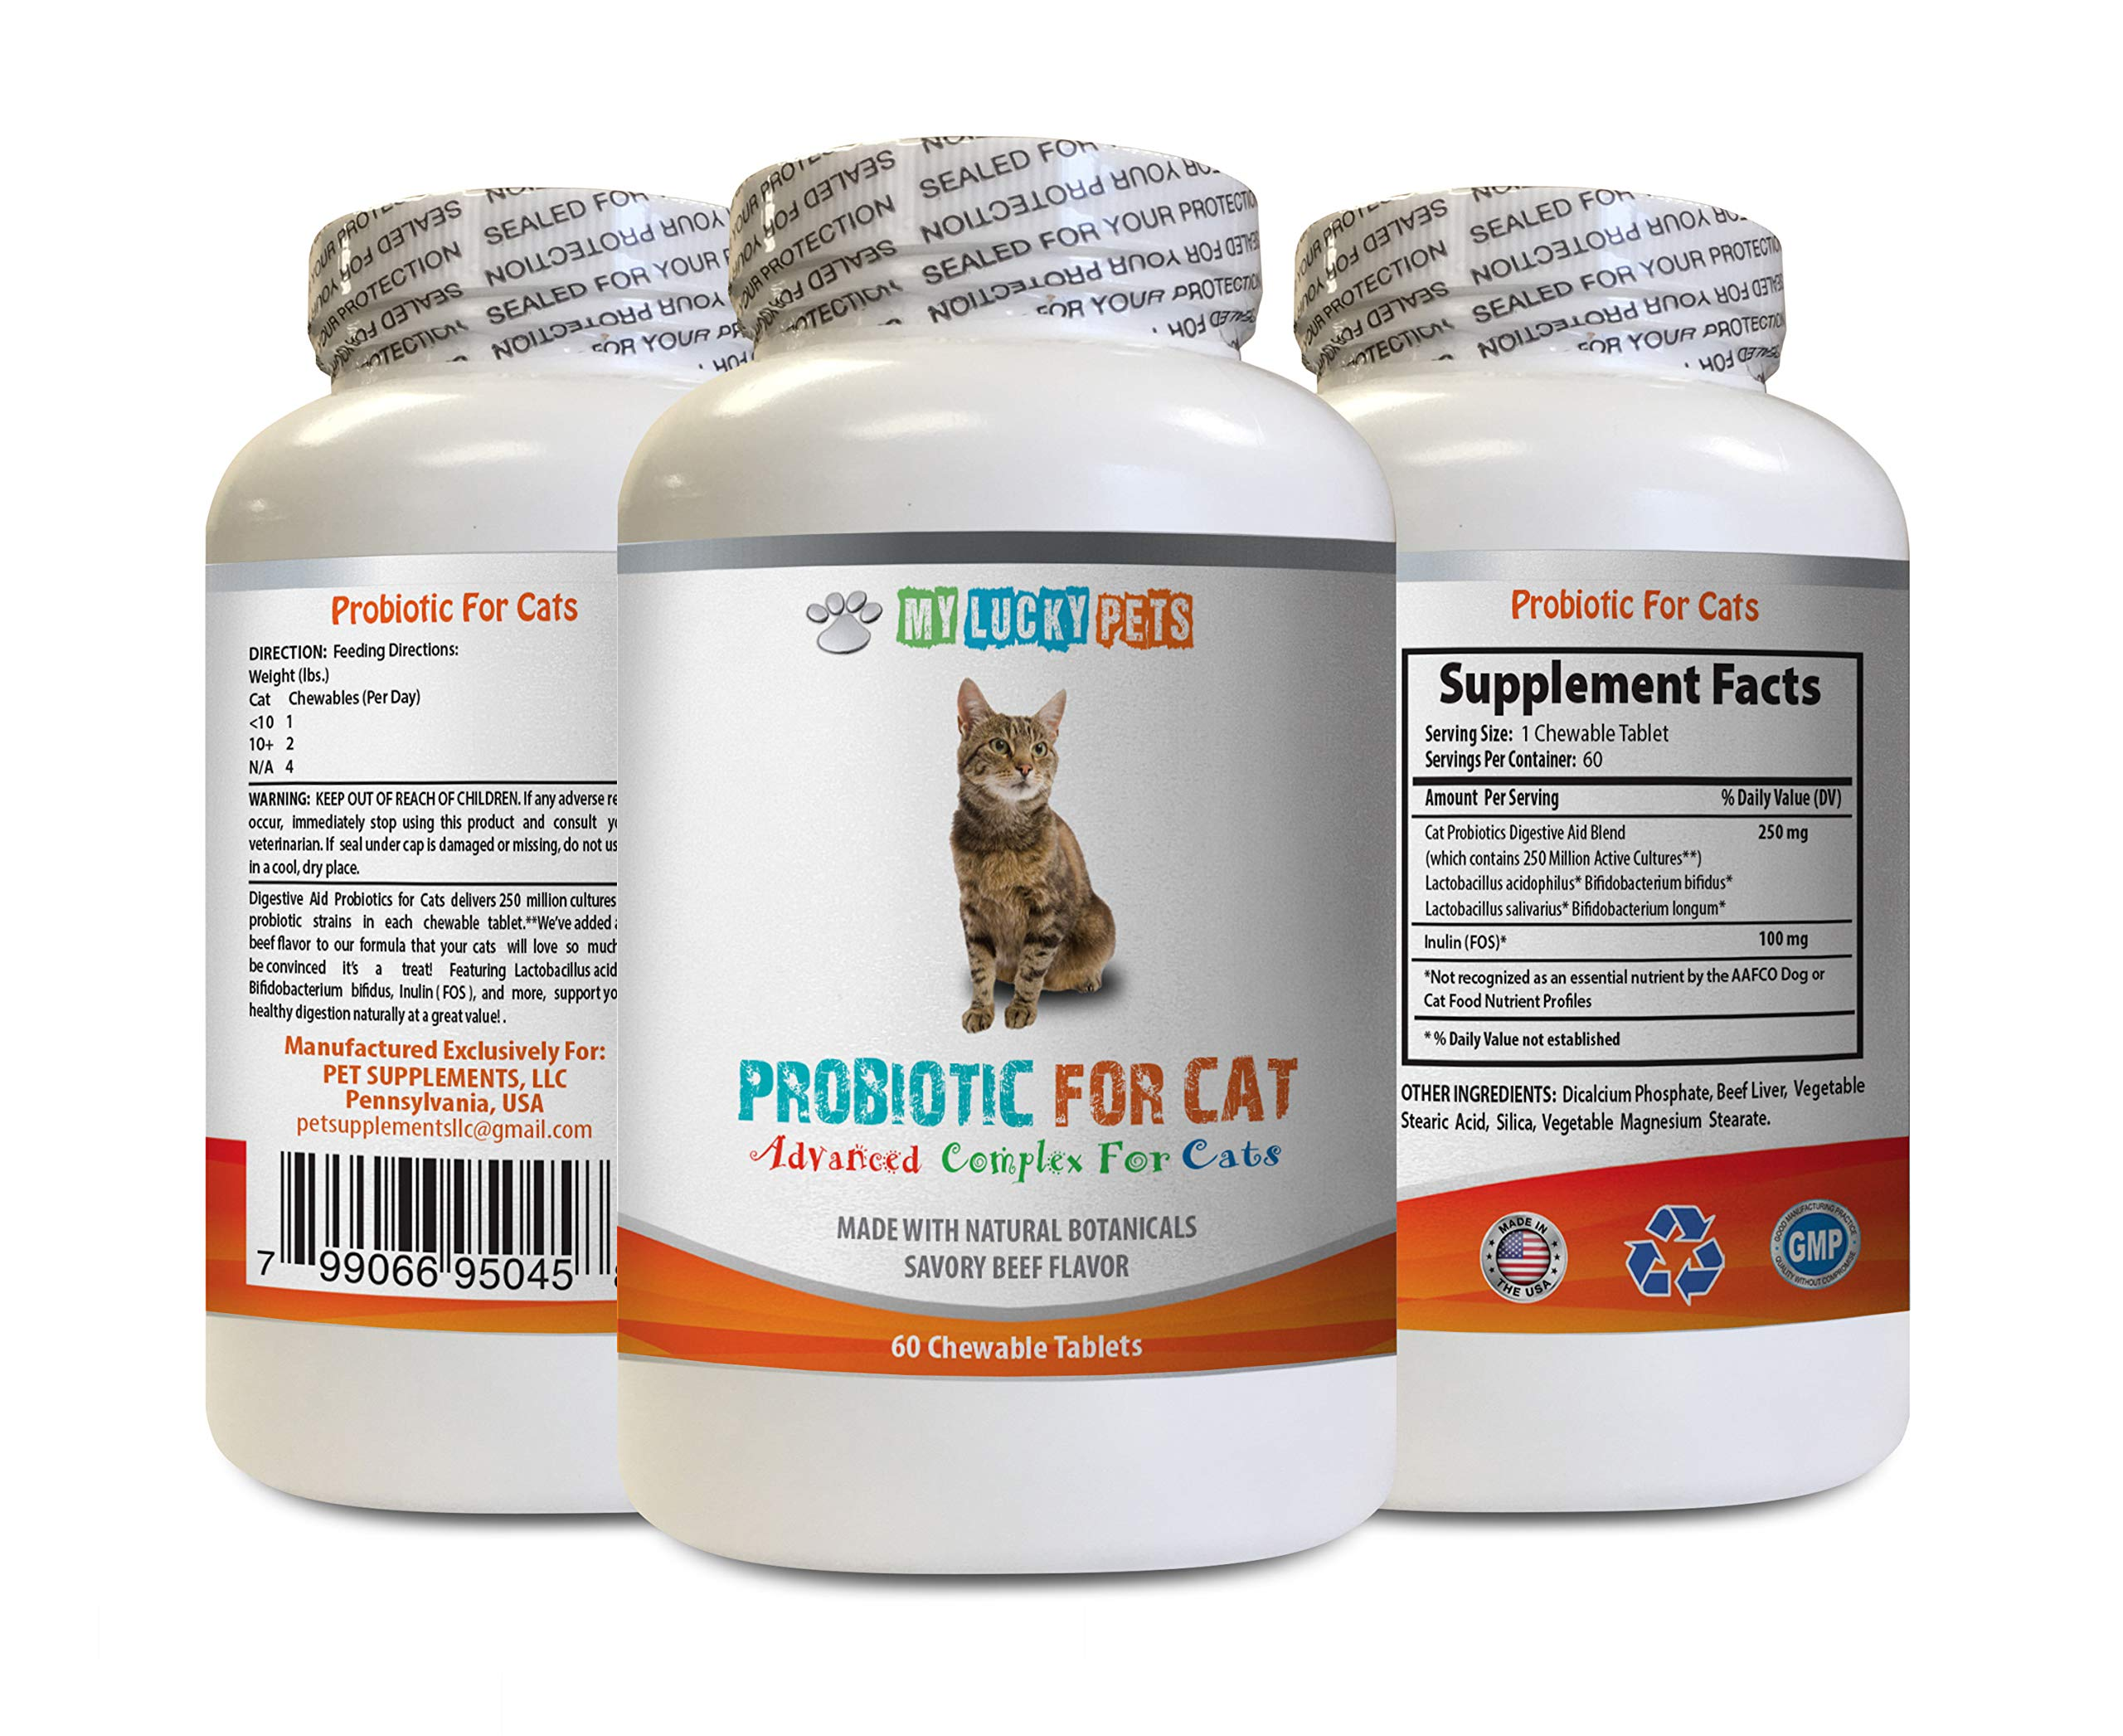 cat digestive enzymes and probiotics - CAT PROBIOTICS - ADVANCED NATURAL DIGESTIVE AID FORMULA - GET RID OF BAD BREATH AND STOP DIARRHEA - acidophilus for cats - 1 Bottle (60 Treats) by MY LUCKY PETS LLC